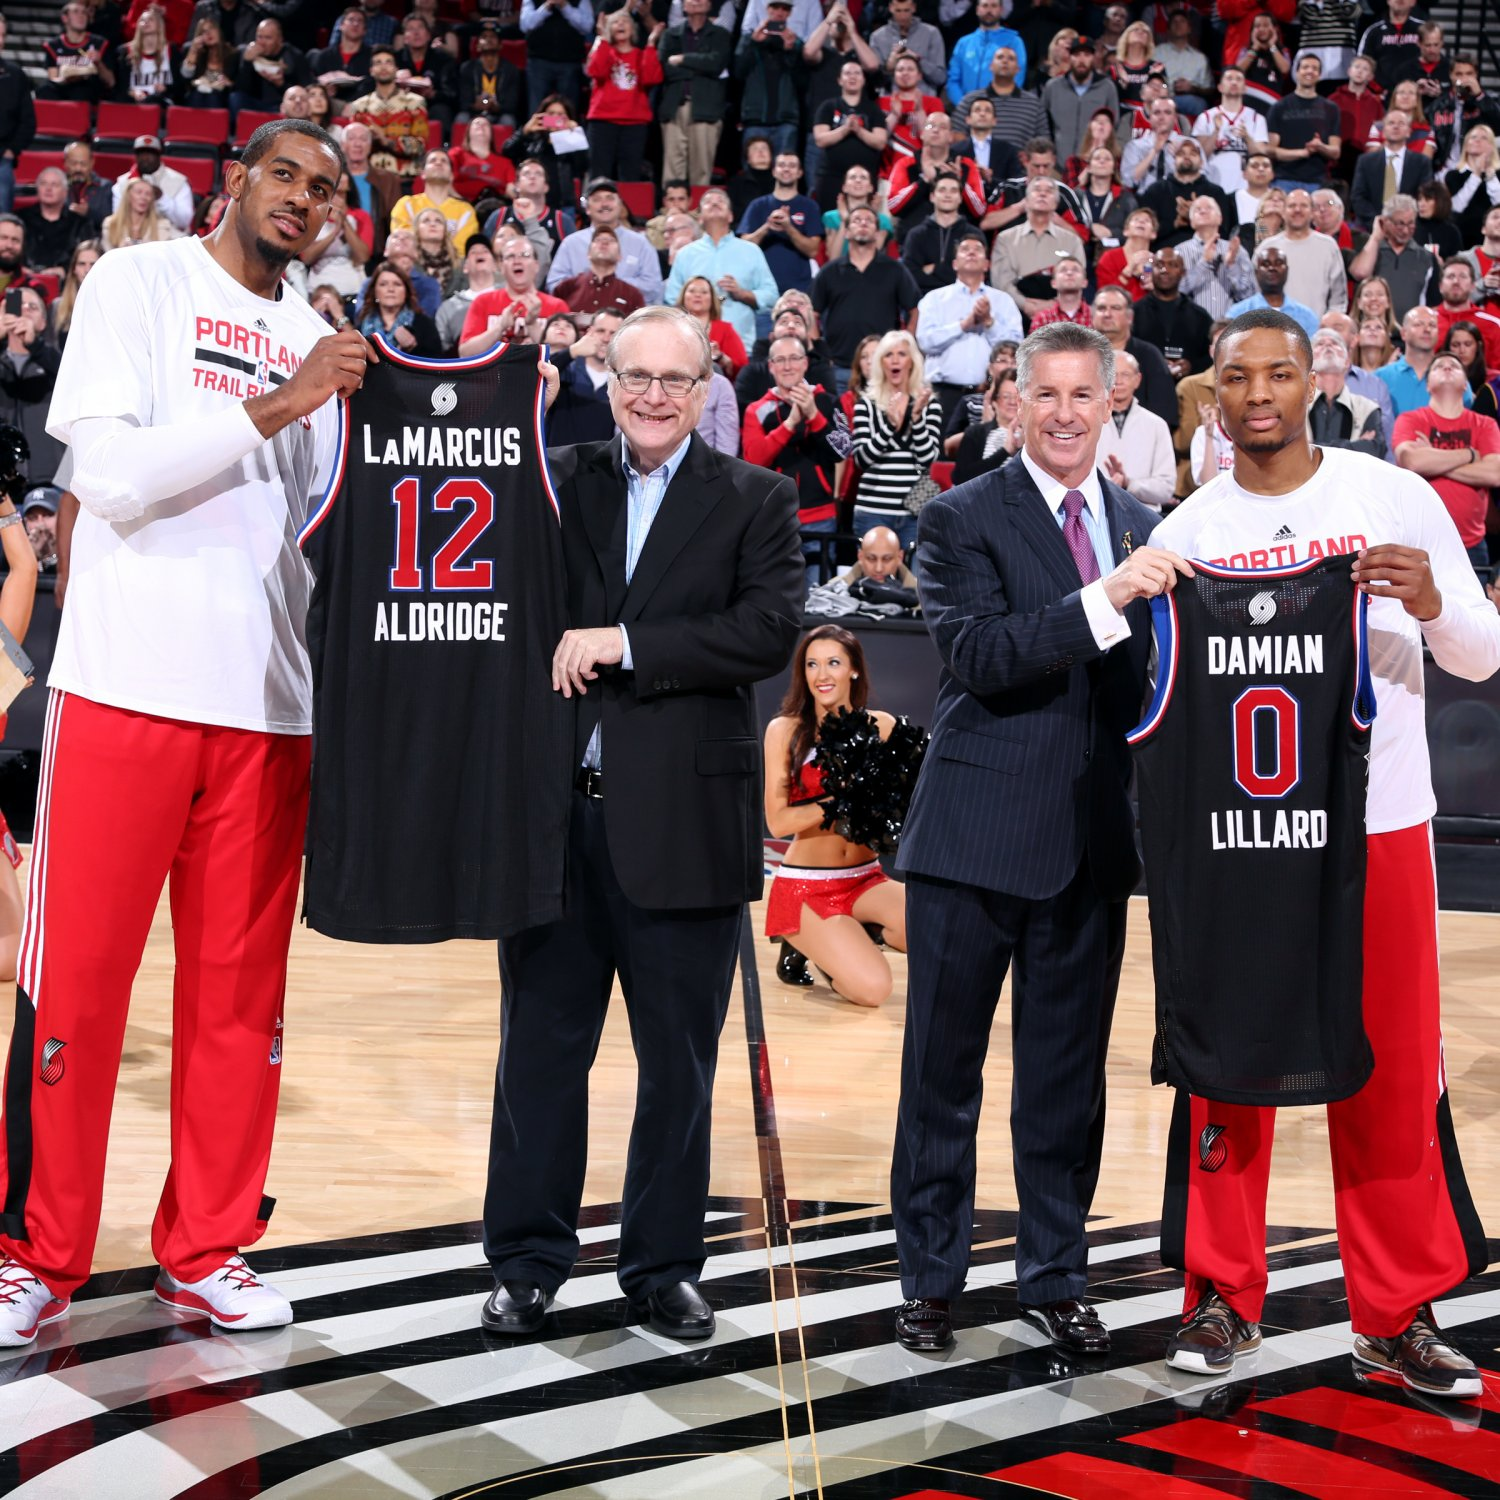 Blazers Roster 2015: Ranking The Portland Trail Blazers' All-Time All-Stars